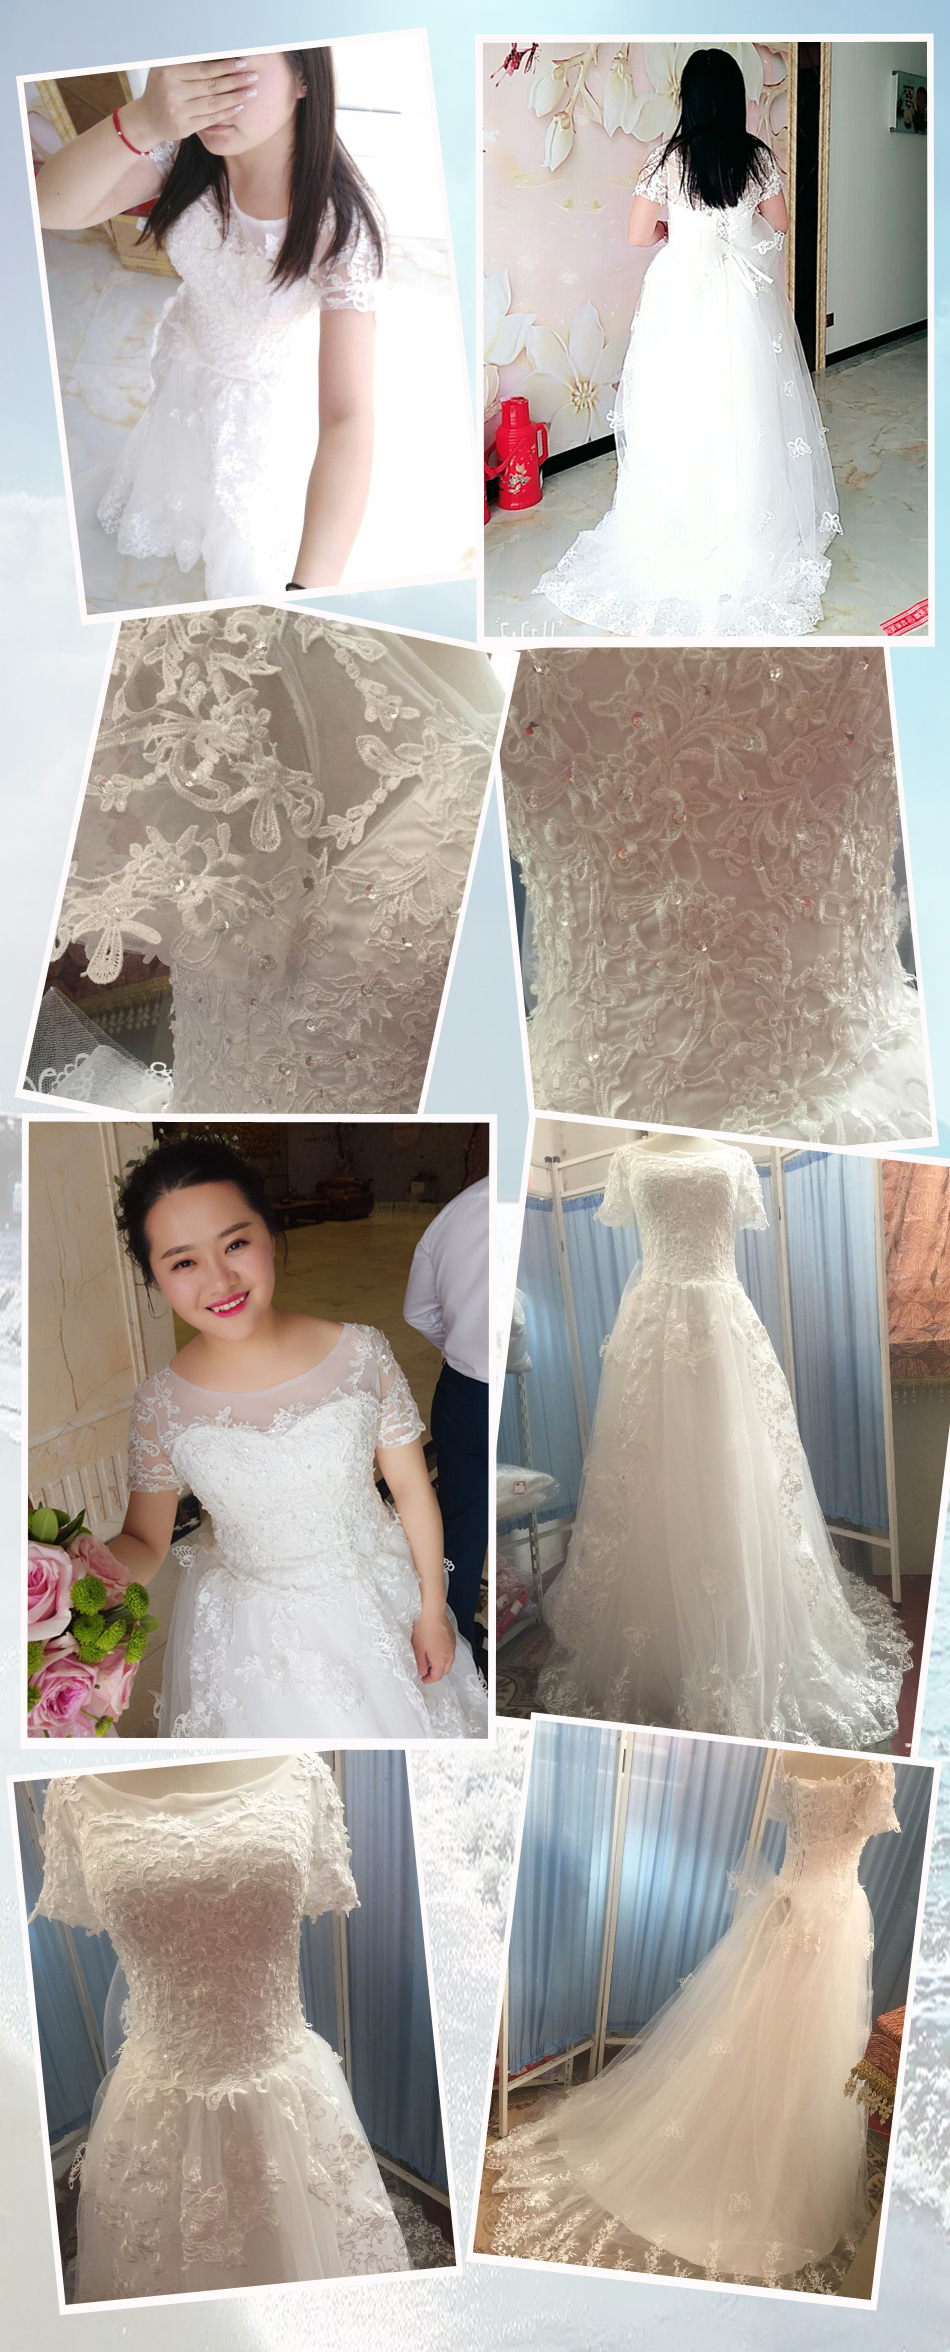 Angel Wedding Dress Marriage Bride Bridal Gown Vestido De Noiva 2017 Bud silk nail bead the small tail big bo 6700 25